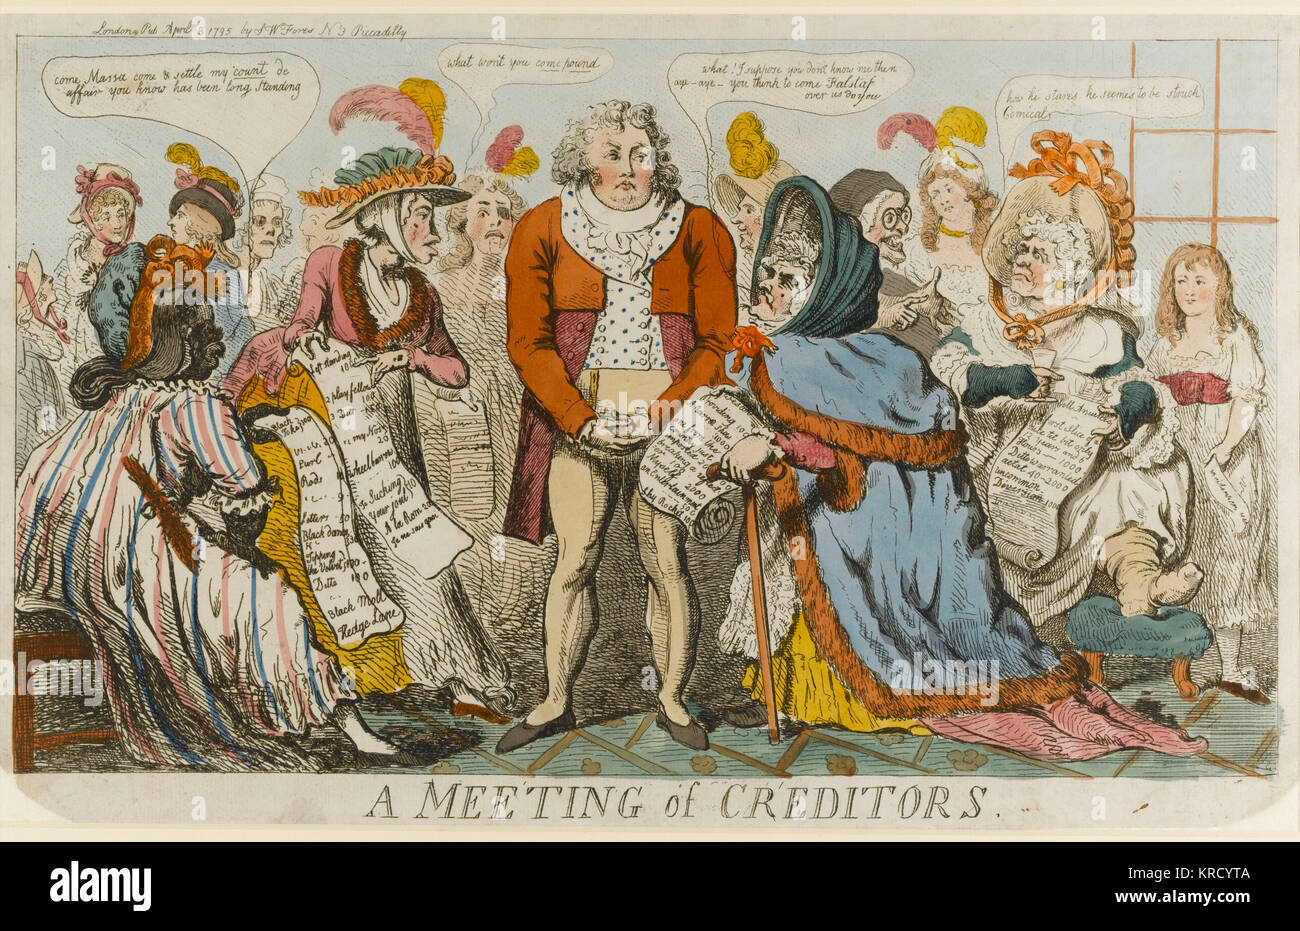 Satirical cartoon, A Meeting of Creditors.  The Prince of Wales is surrounded by 'clamouring bawds and courtesans' - Stock Image